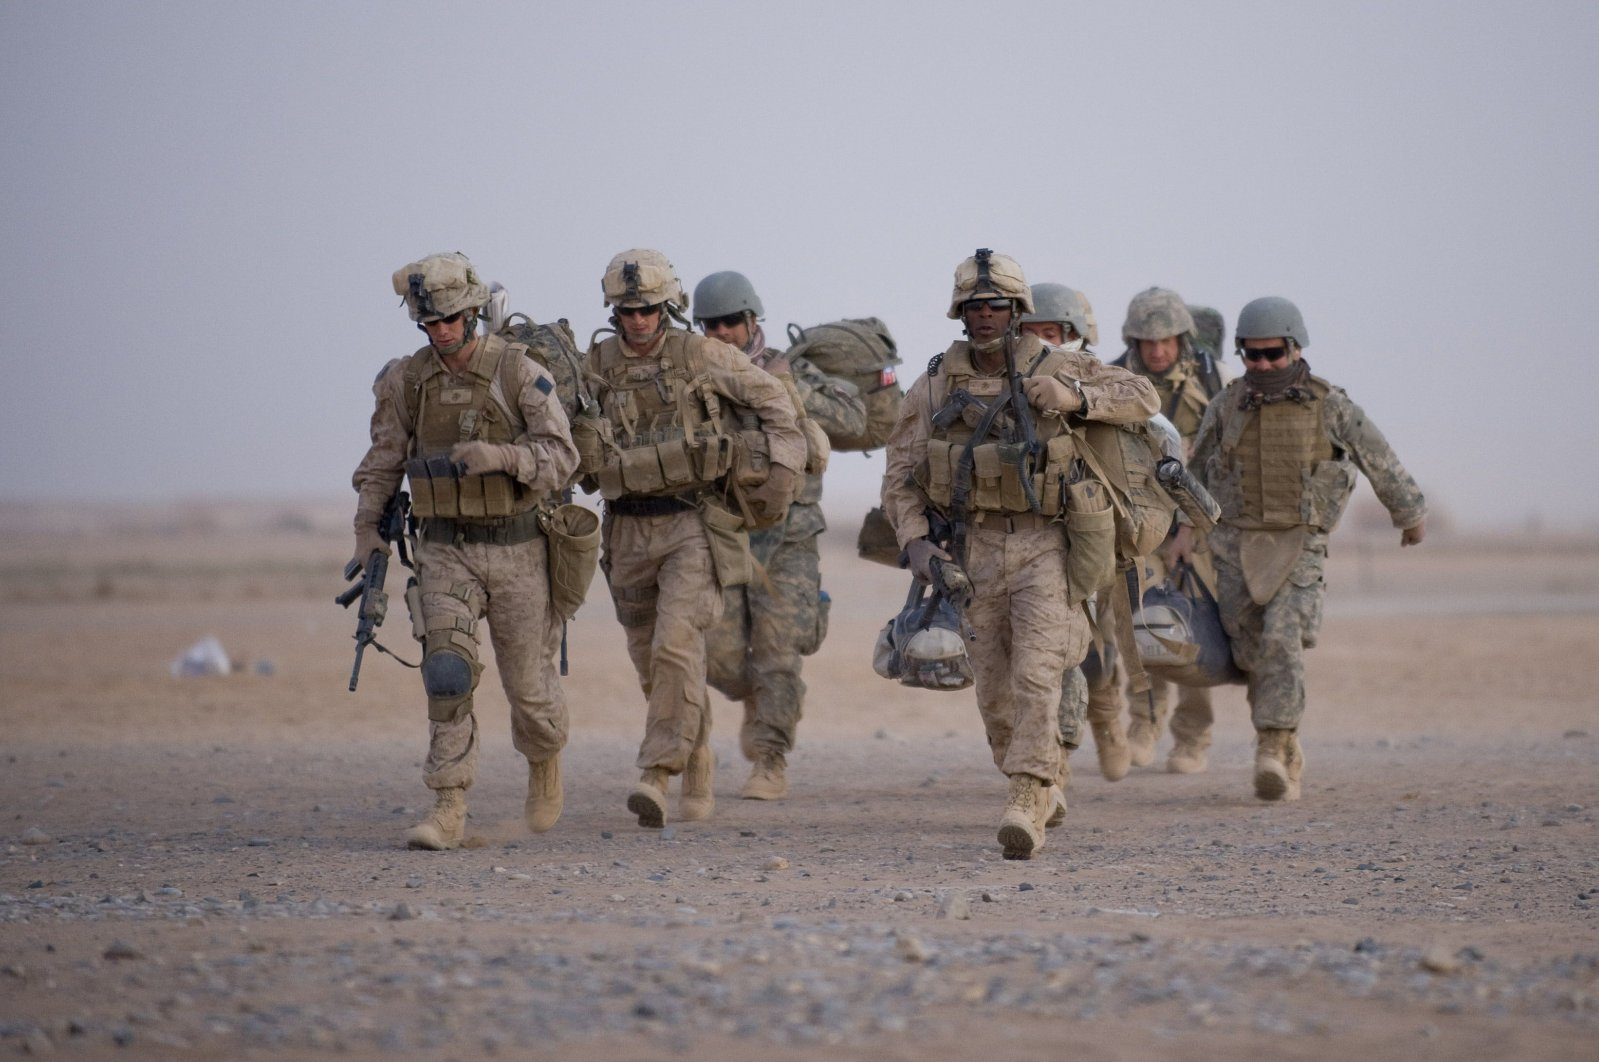 U.S. Marines walk toward helicopter transport as part of Operation Khanjar at Camp Dwyer in Helmand Province, July 2, 2009. (AFP Photo)